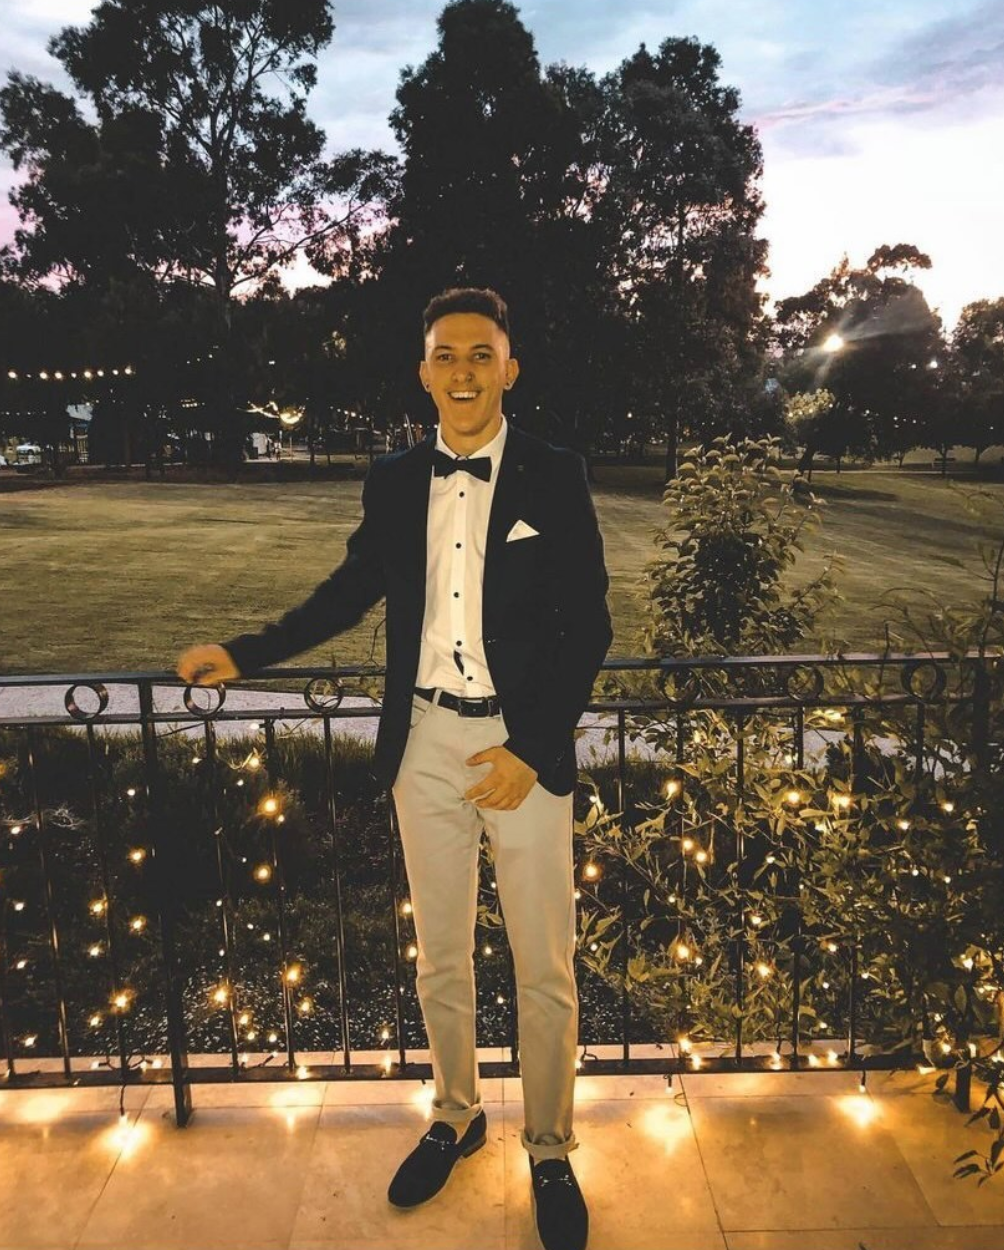 Braedon Magrowski: The Young Entrepreneur Who Inspires People to Live Life On Their Terms